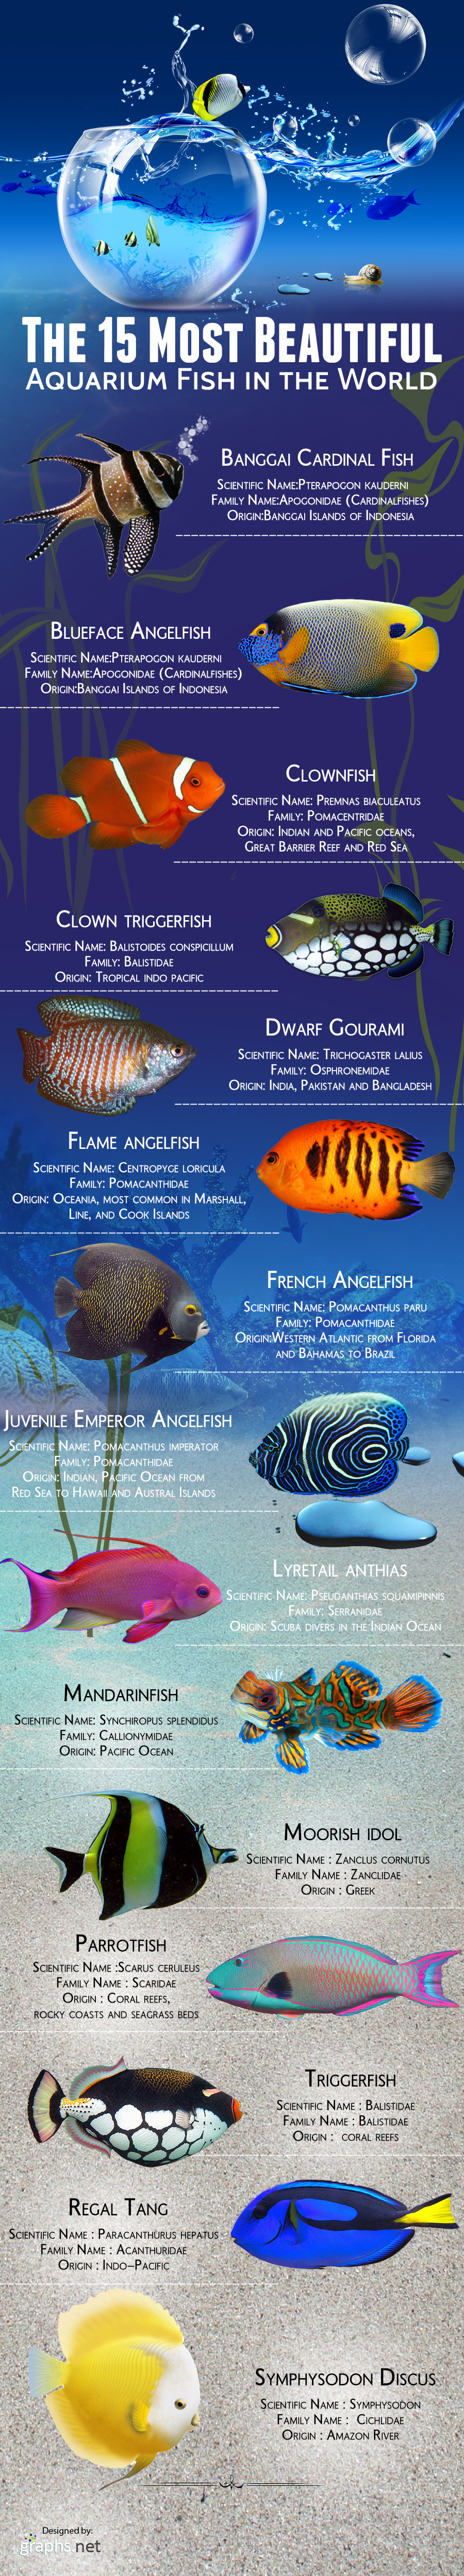 Infographic - the-15-most-beautiful-aquarium-fish-in-the-world